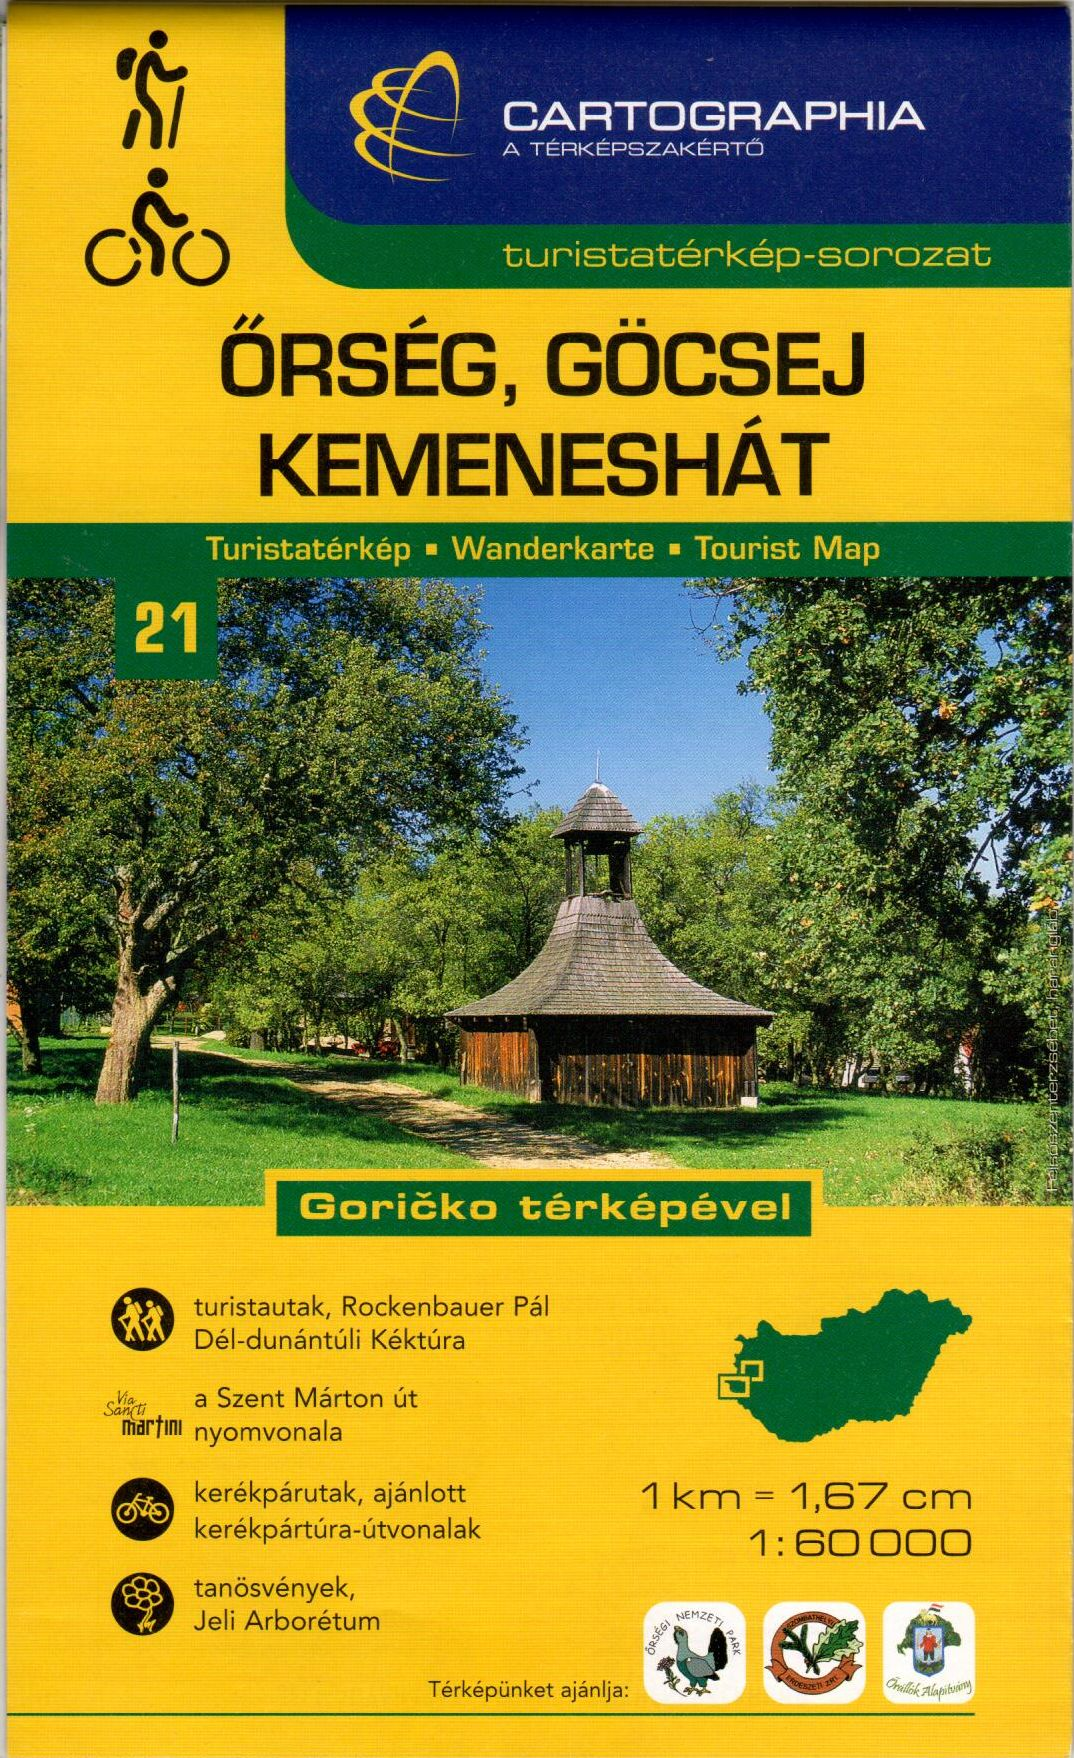 Two sided tourist map. Kemeneshát is on one side, and Őrség-Göcsej on the back of the map